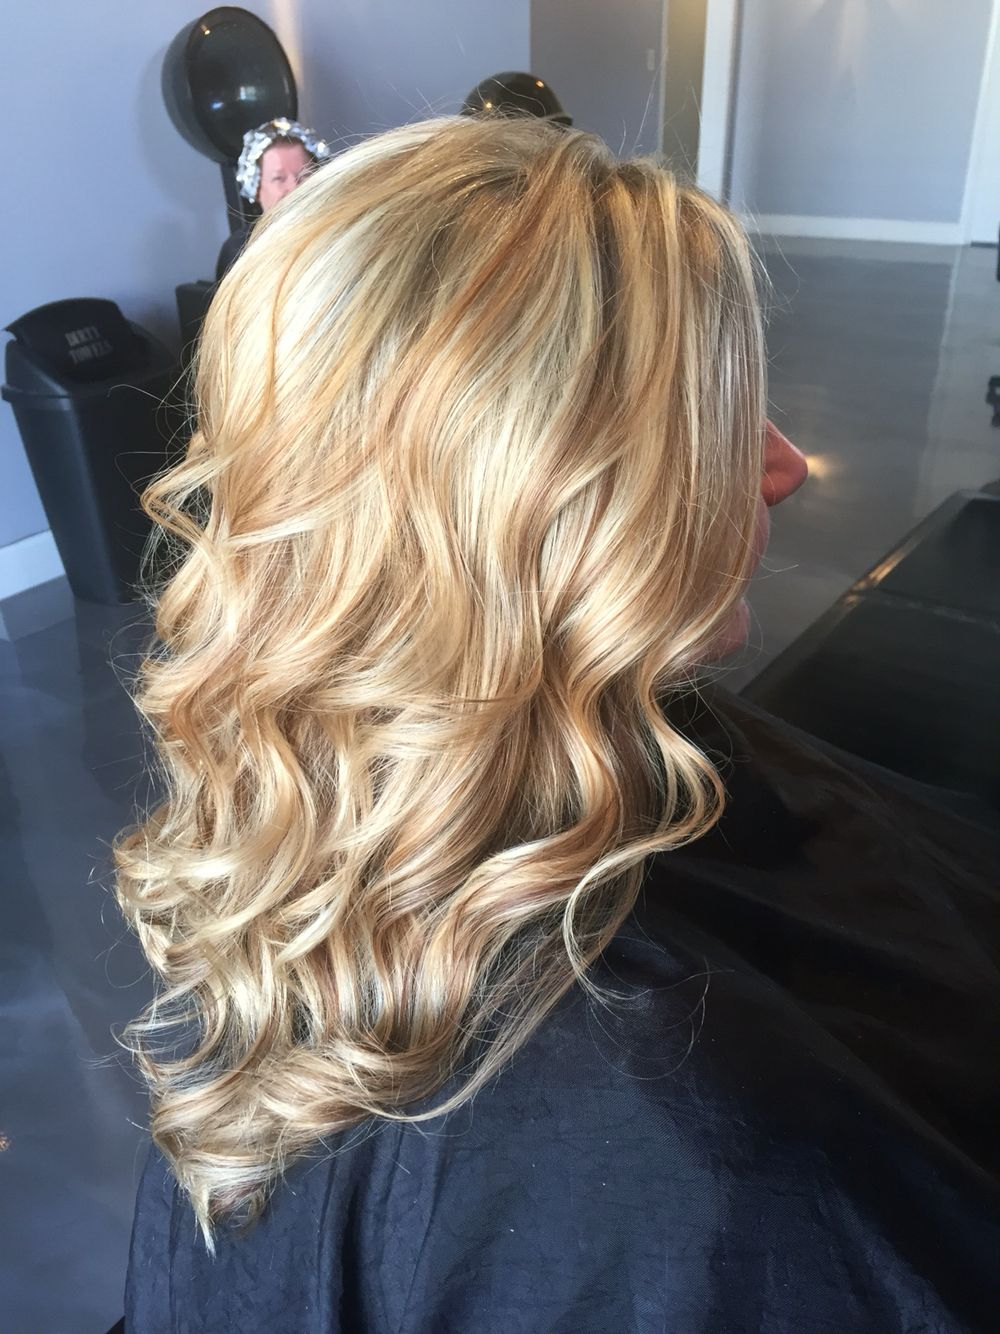 White Blonde Highlighted With Warm Caramel And Coffee Accents